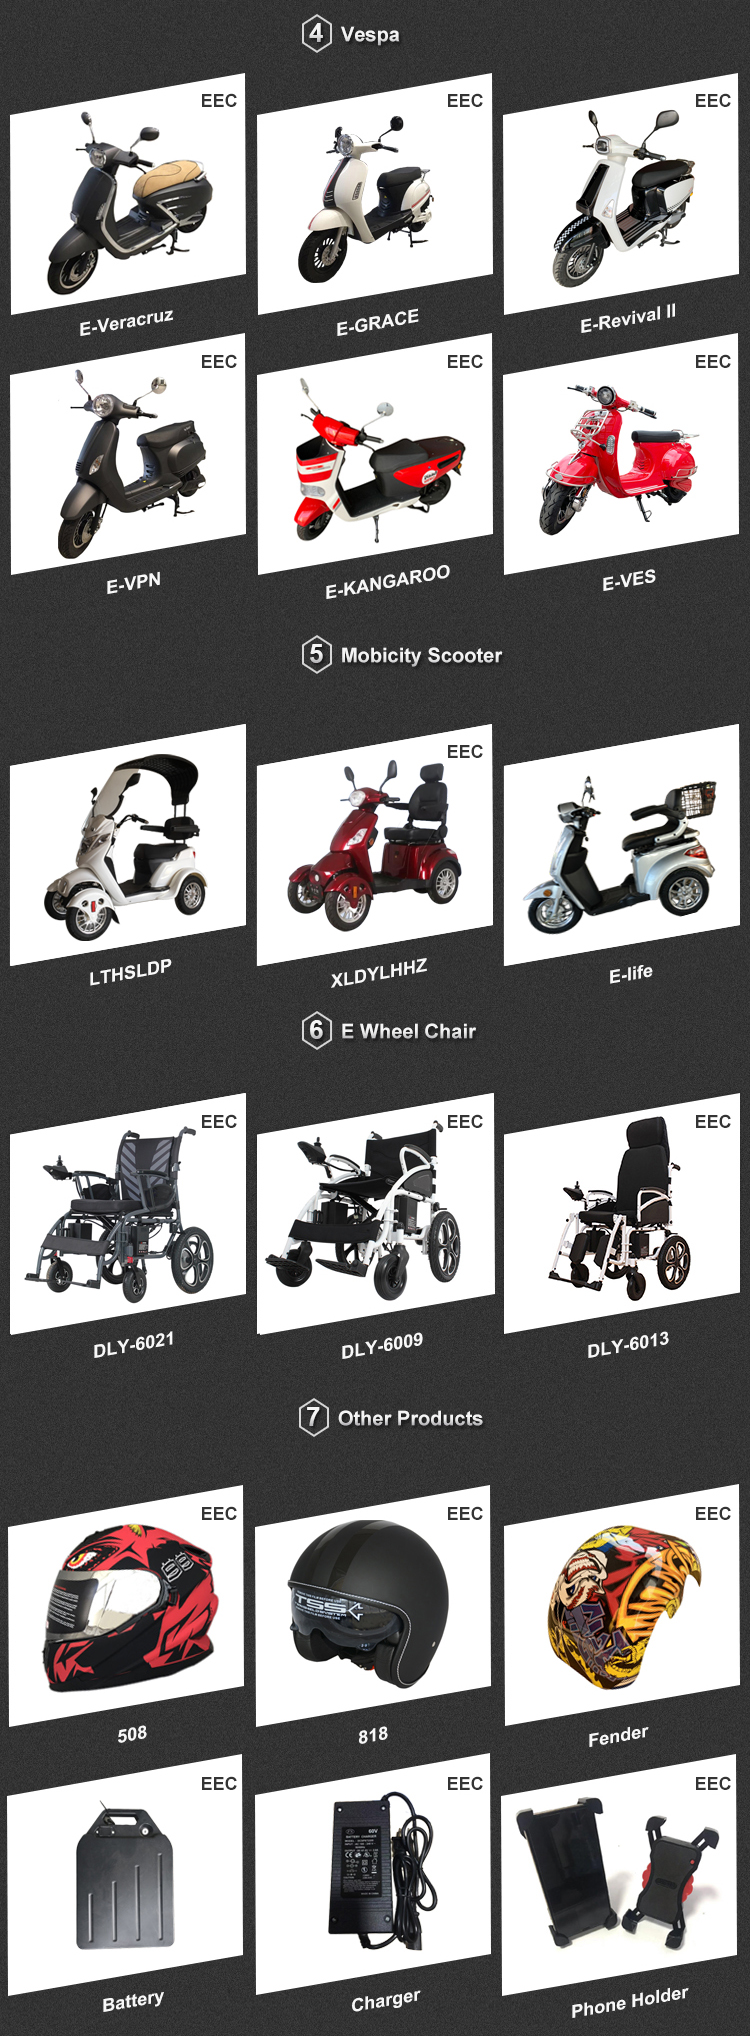 60 volt 3000W cheap new small electric scooter electric motorcycles adult vespa model food delivery